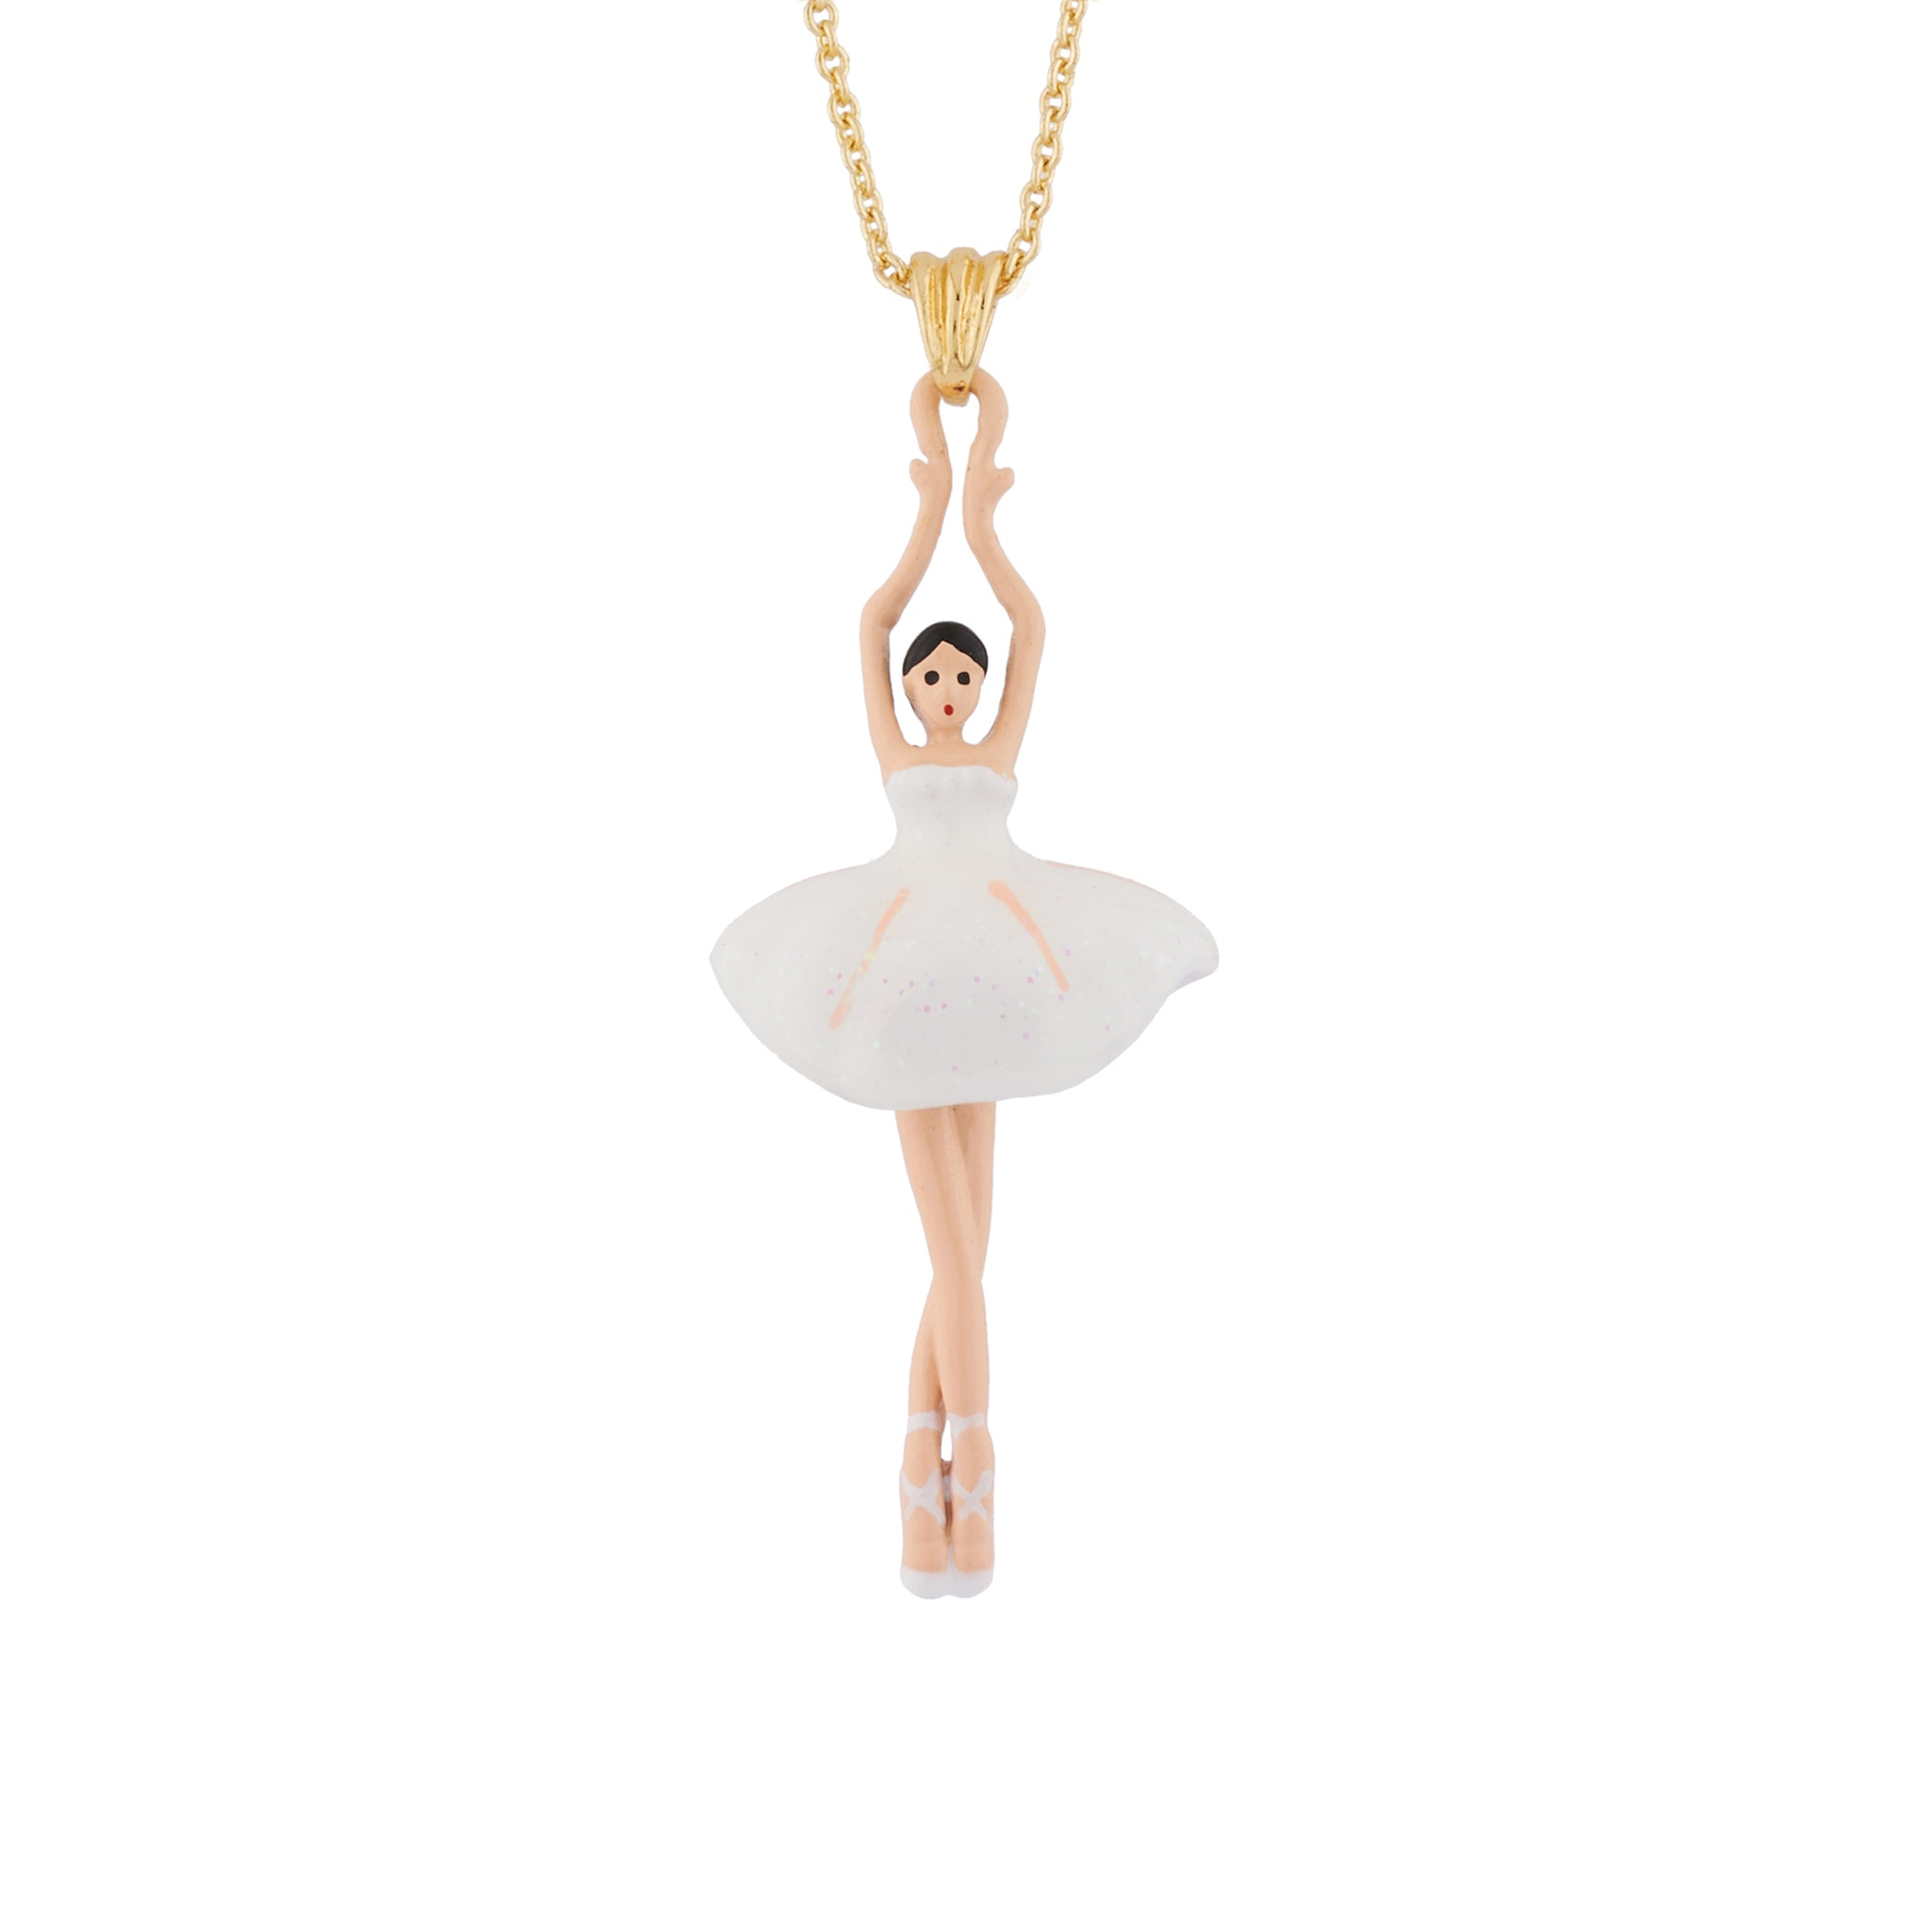 White Pendant Necklace with Toe-dancing Ballerina